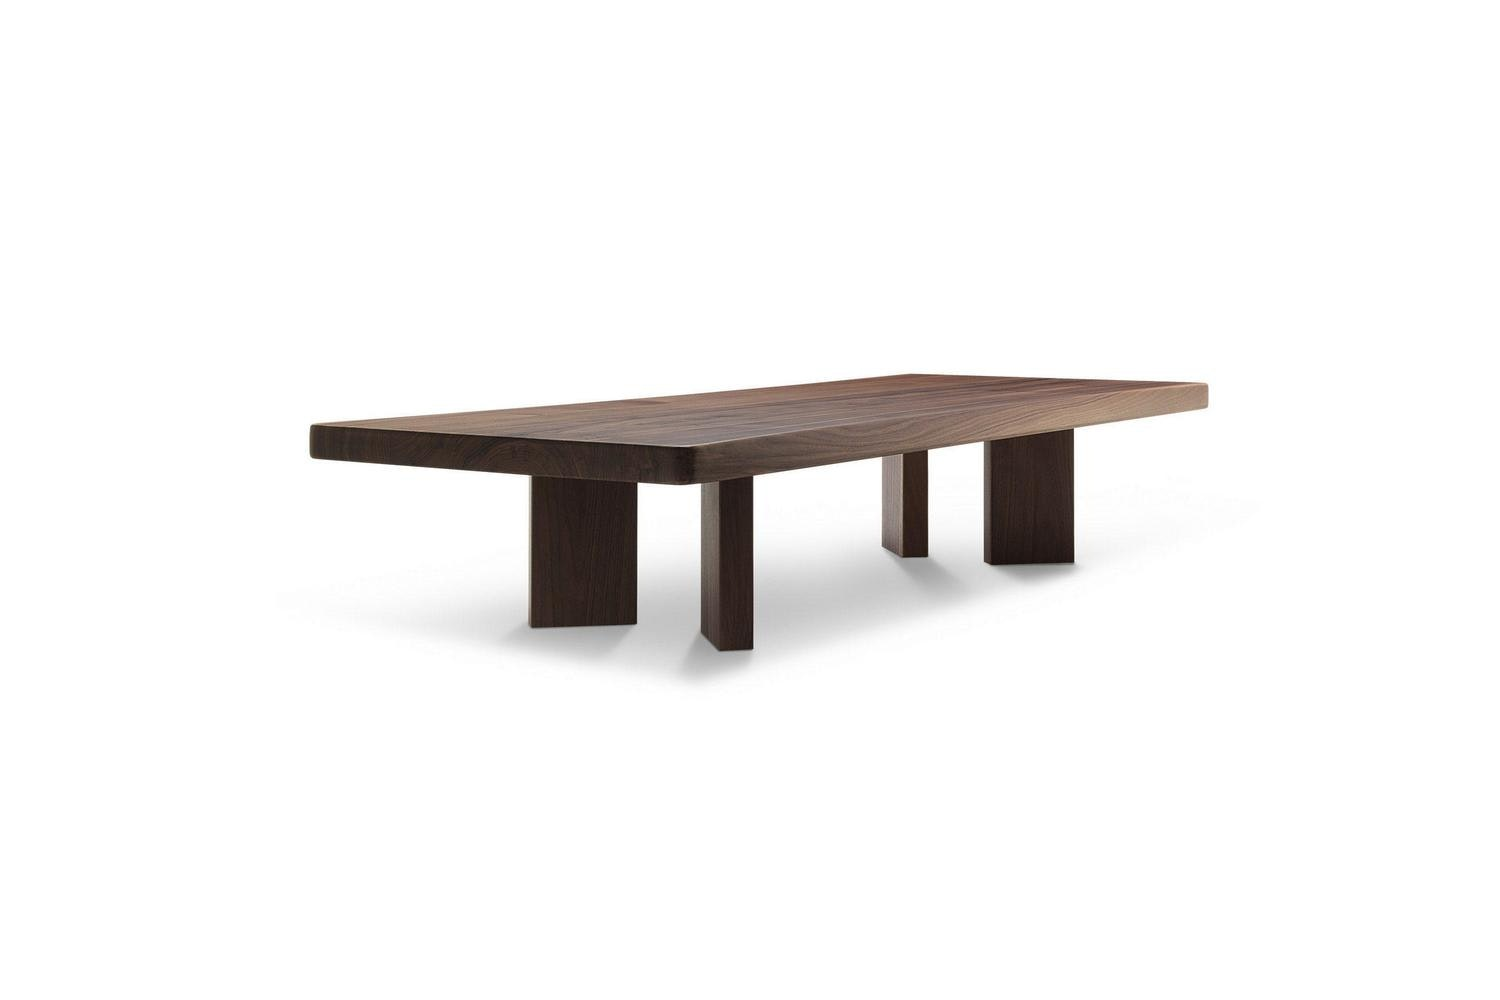 515 Plana Coffee Table by Charlotte Perriand for Cassina